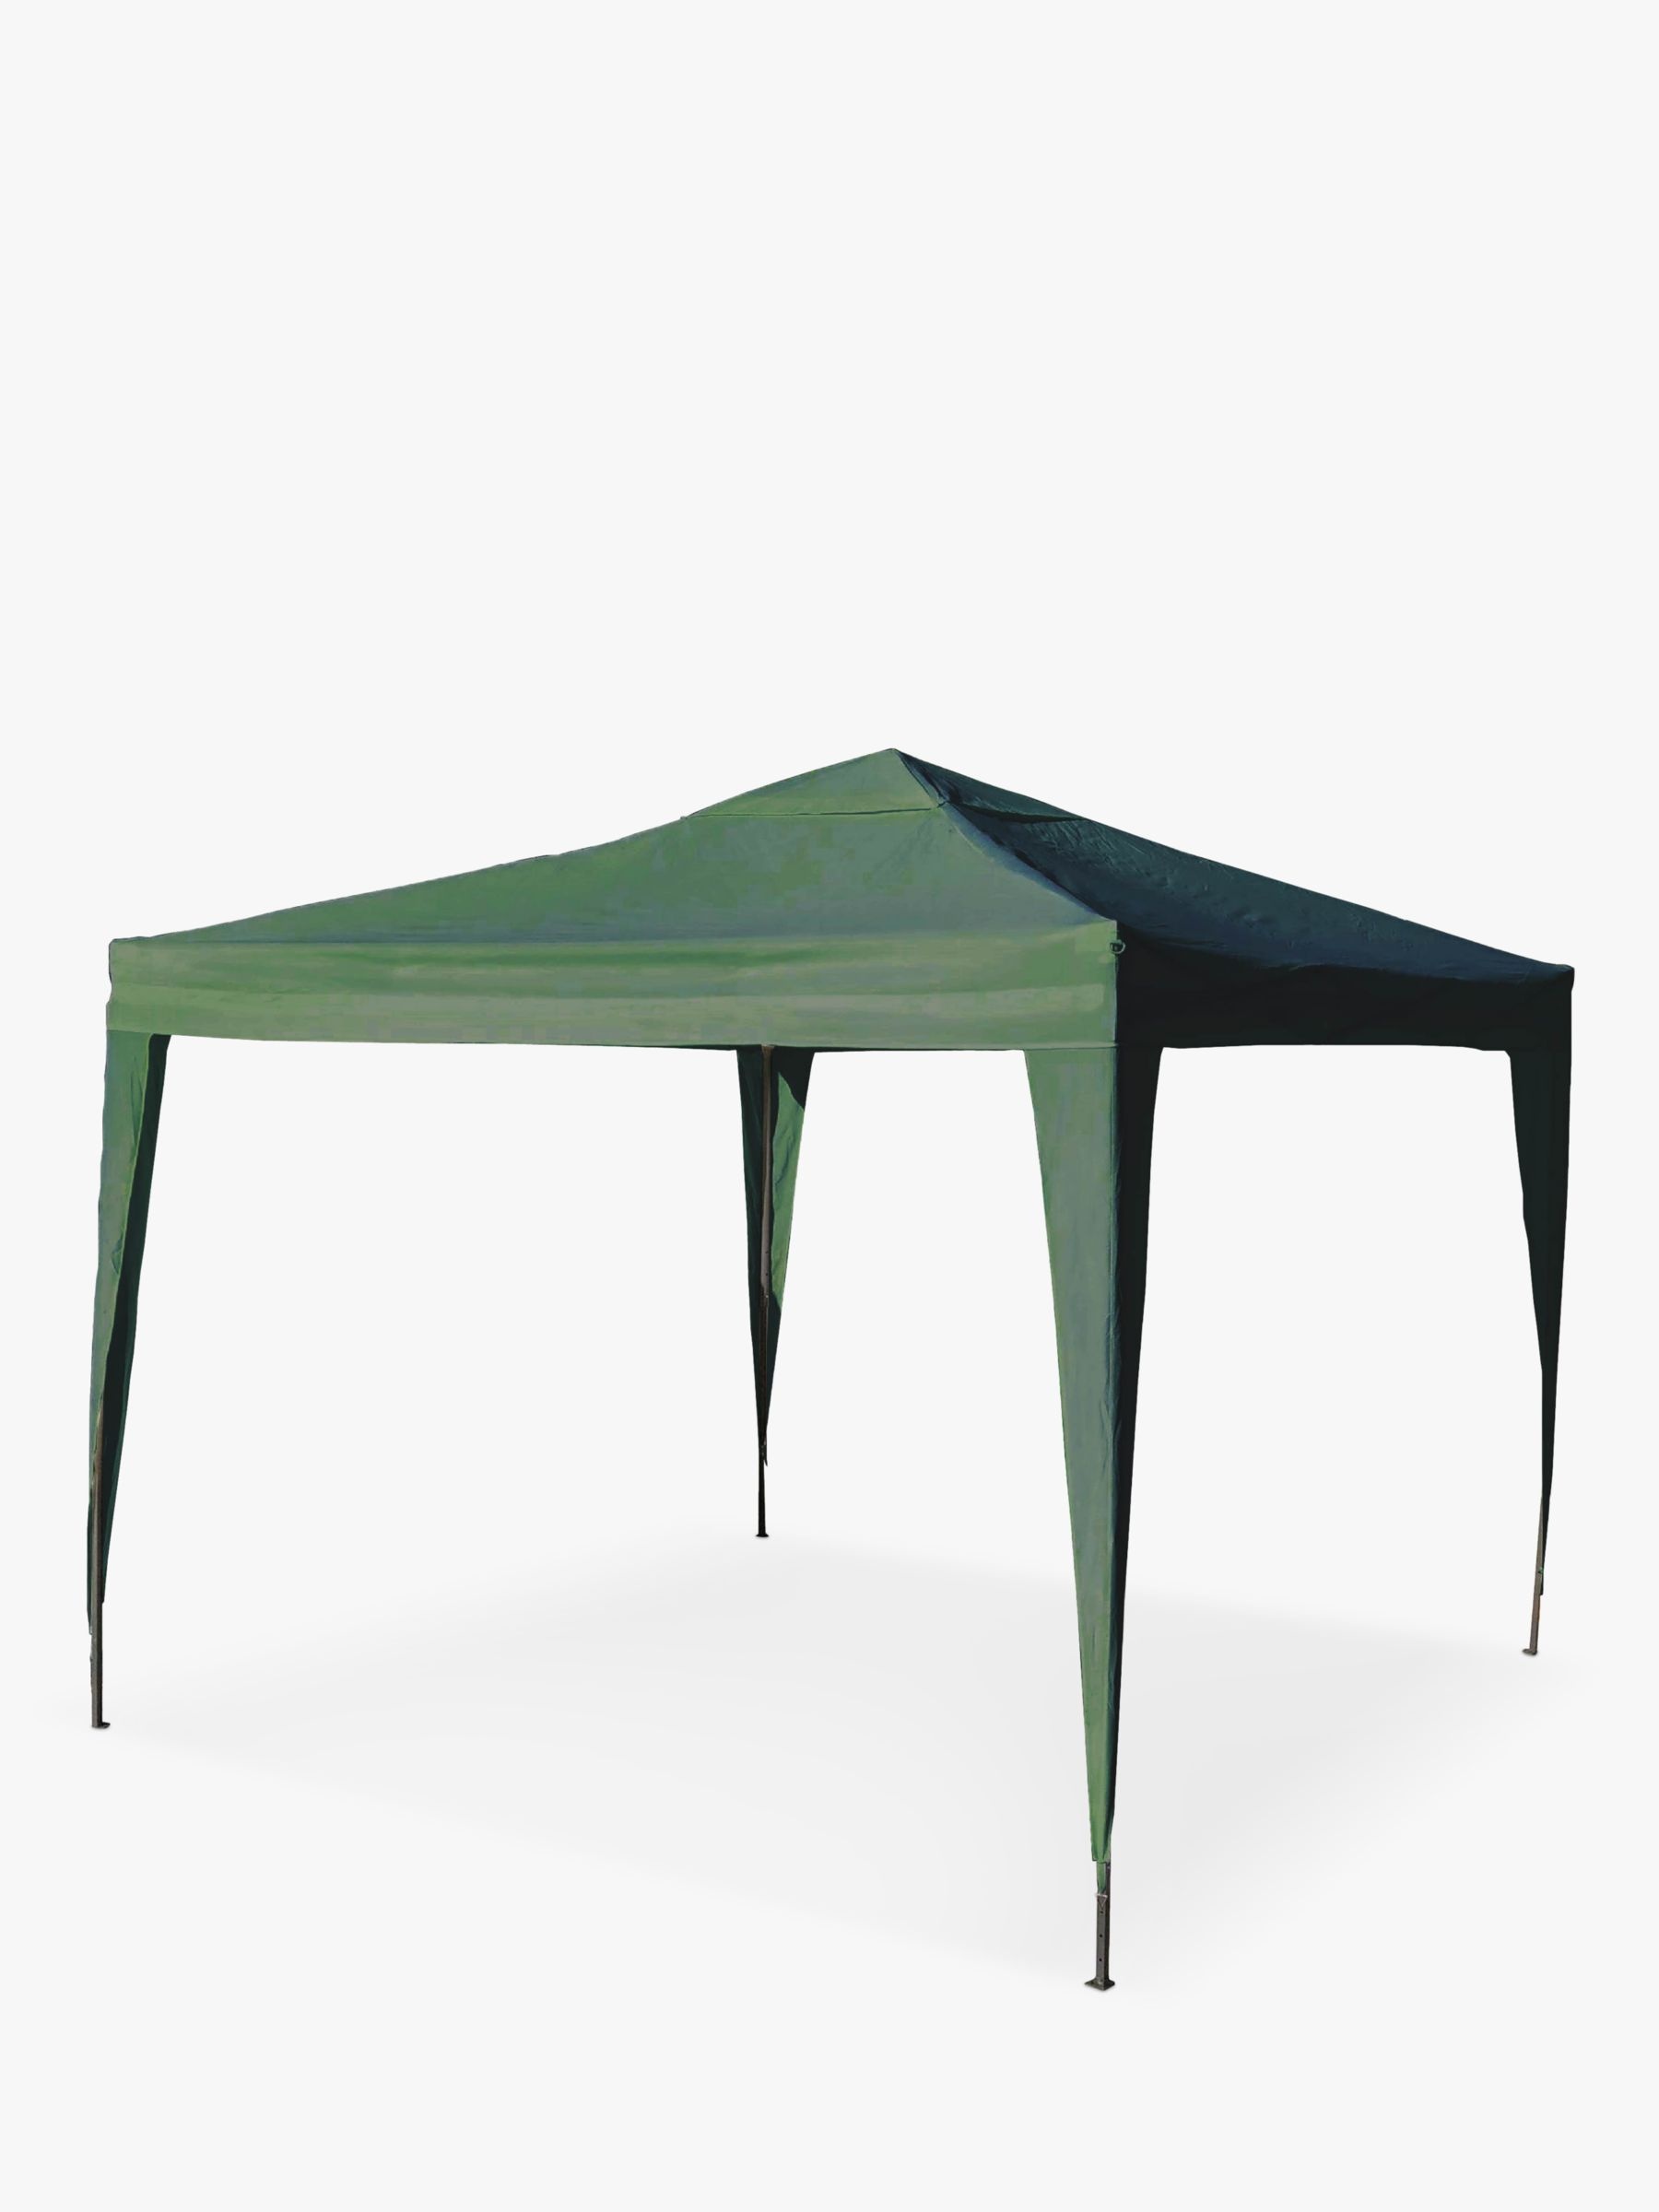 LG Outdoor LG Outdoor Hamilton Pop Up 3 x 3m Gazebo & Carry Case, Green